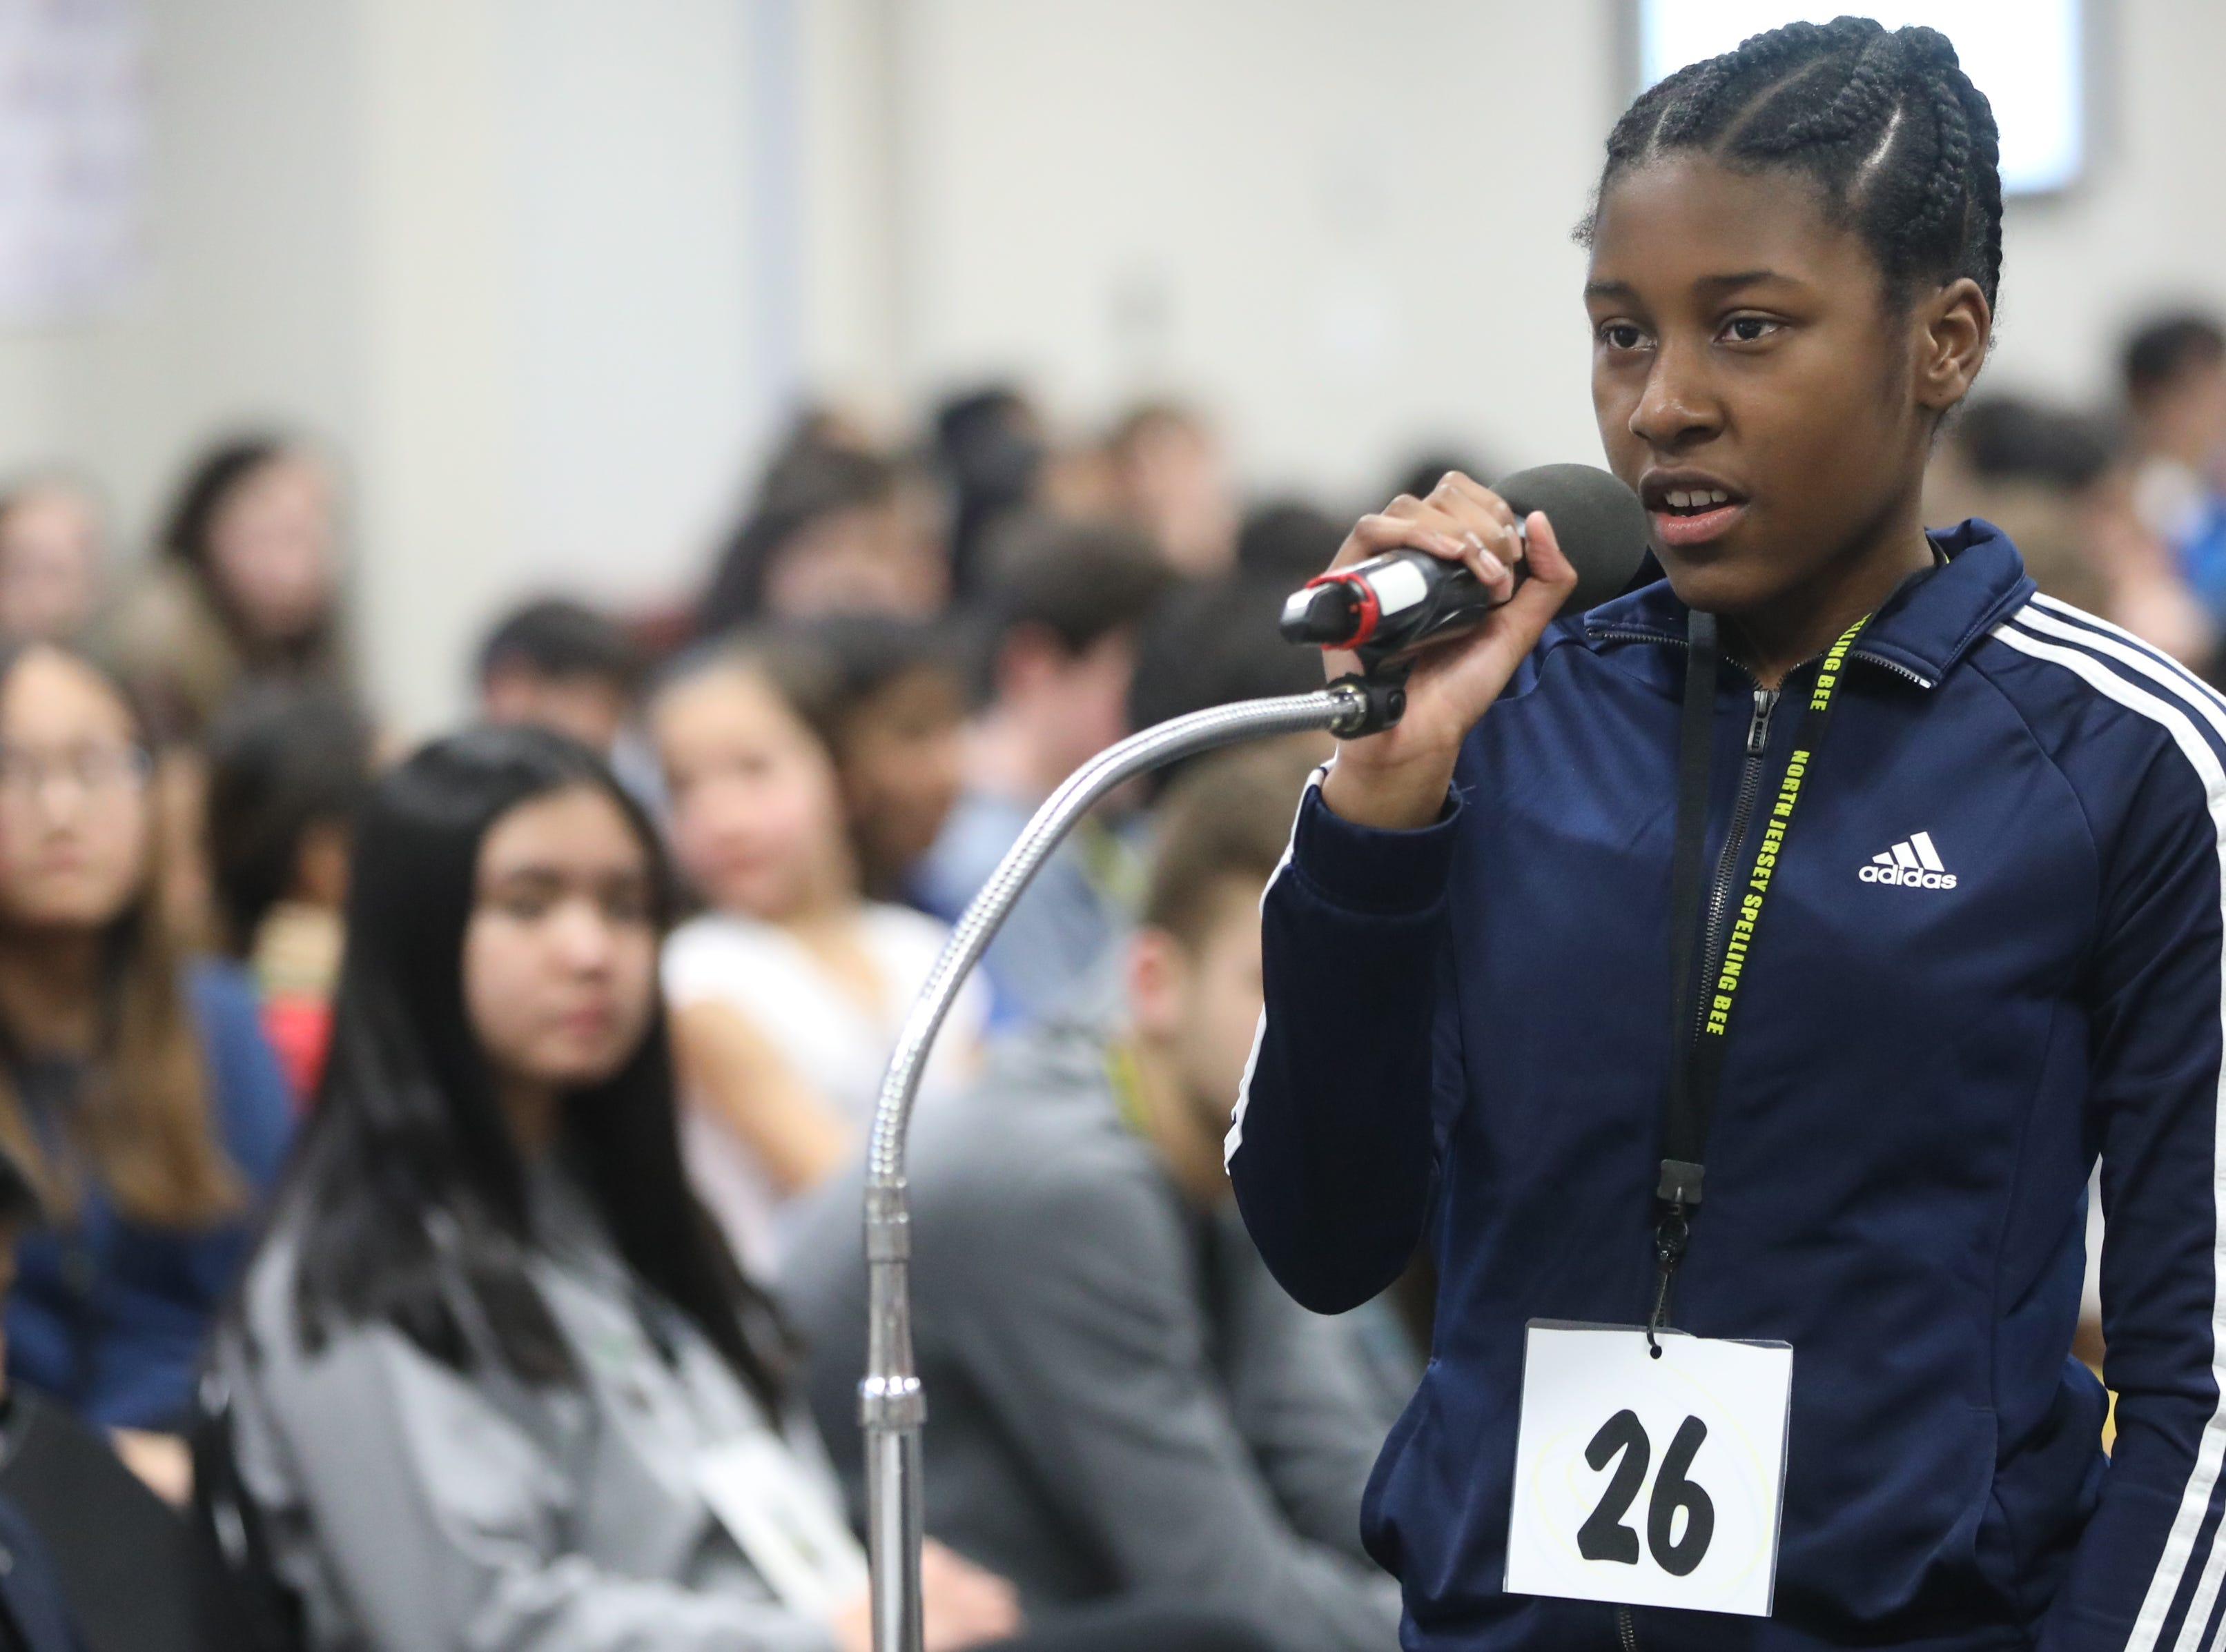 Kasey Allen, of Englewood, competes in the first round of the 2019 North Jersey Spelling Bee, in Paramus. Thursday, March 14, 2019